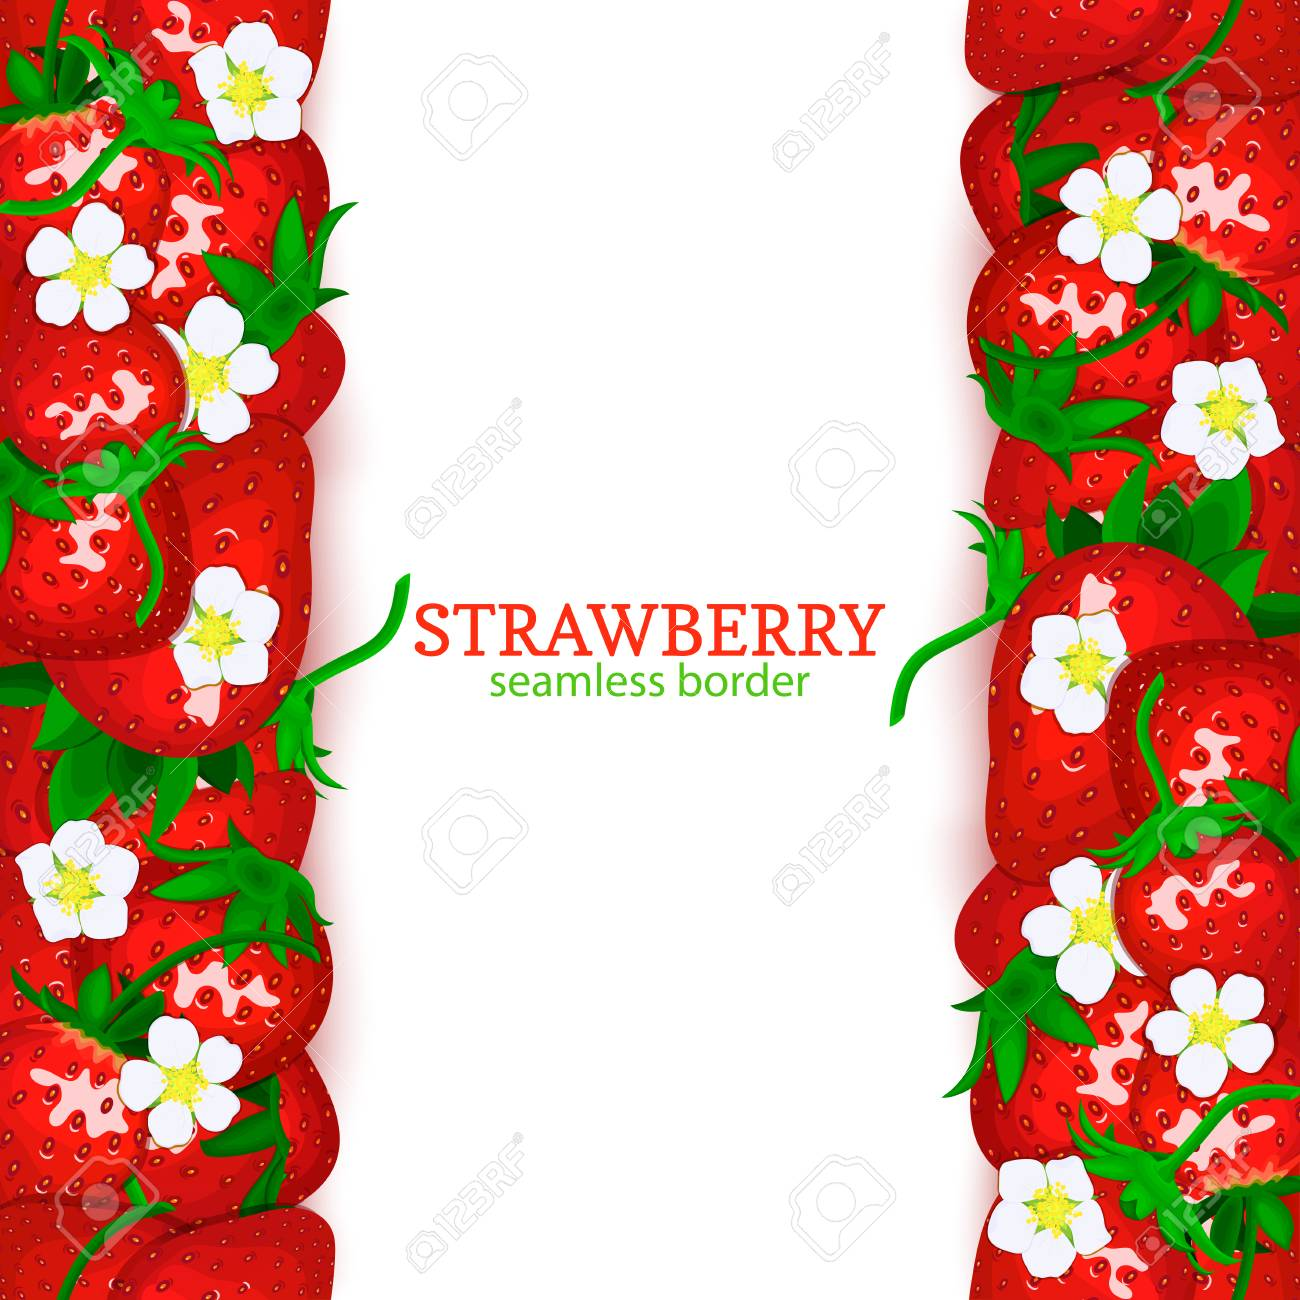 Strawberry Fruit Vertical Seamless Border Vector Illustration Card Top And Bottom Fresh Red Beries For